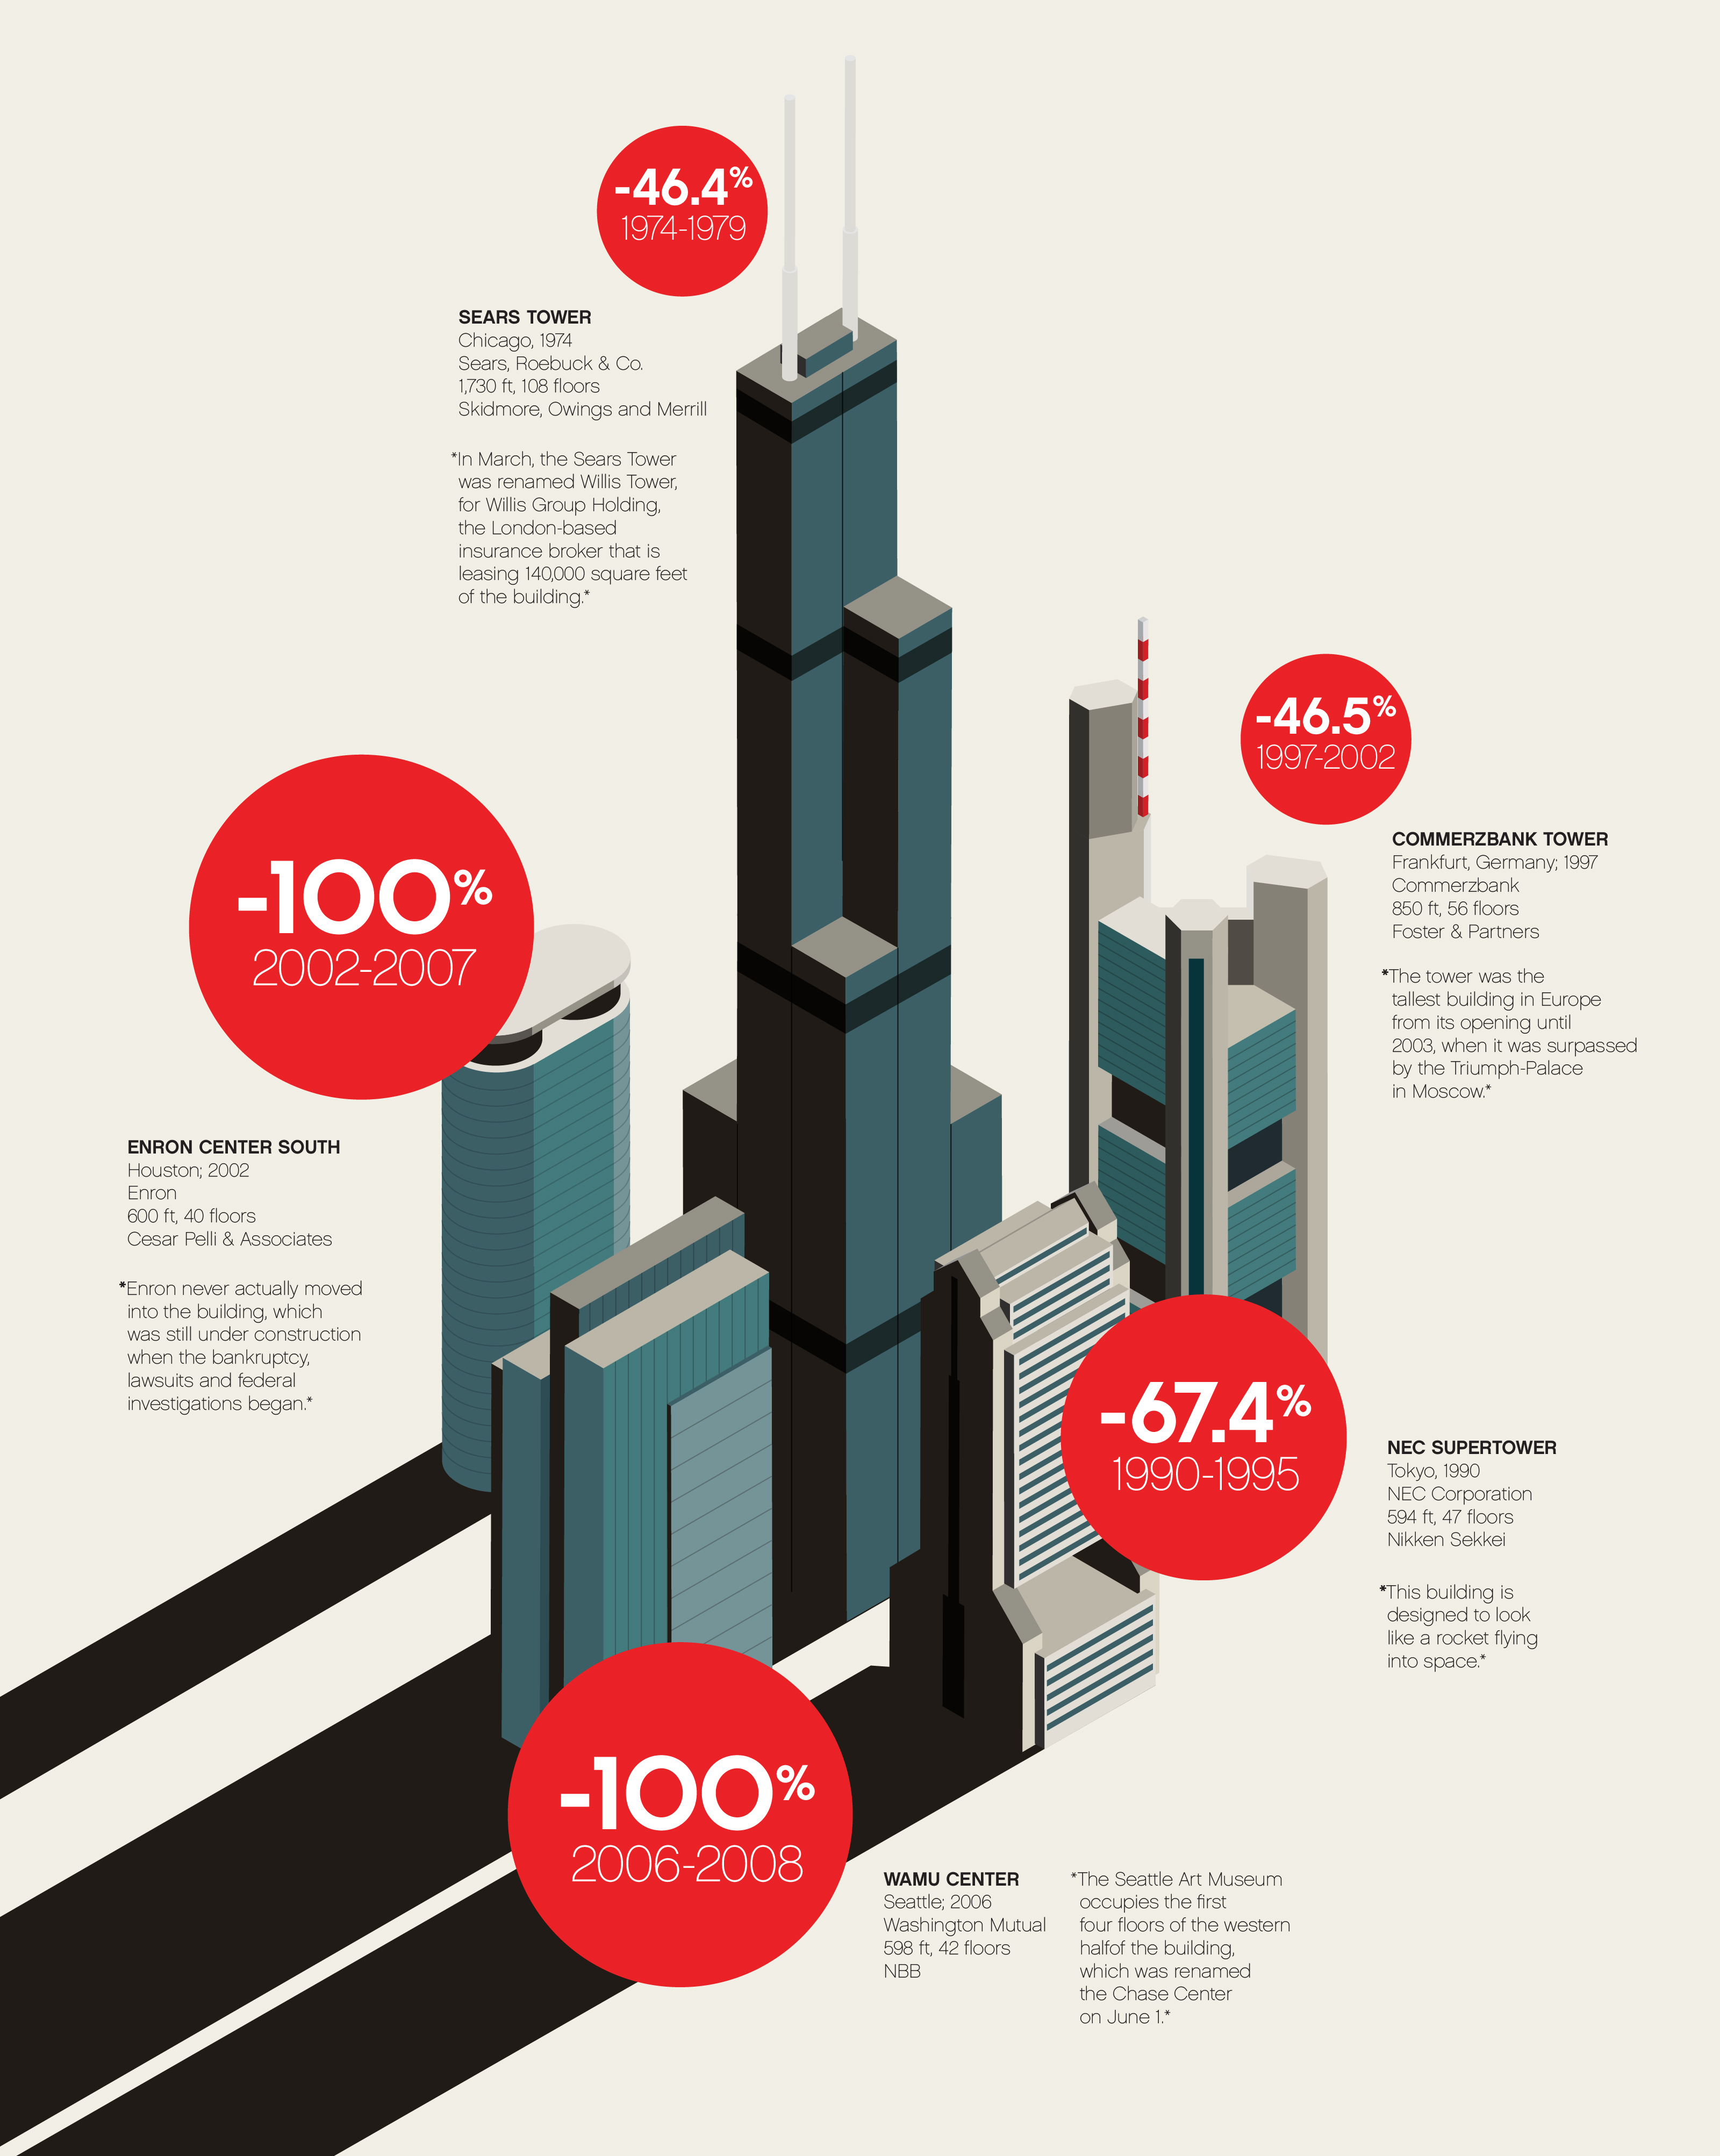 Fast Company illustration showing skyscrapers like Sears Towers Commerzbank Enron Center Wamu Center and NEC Supertower